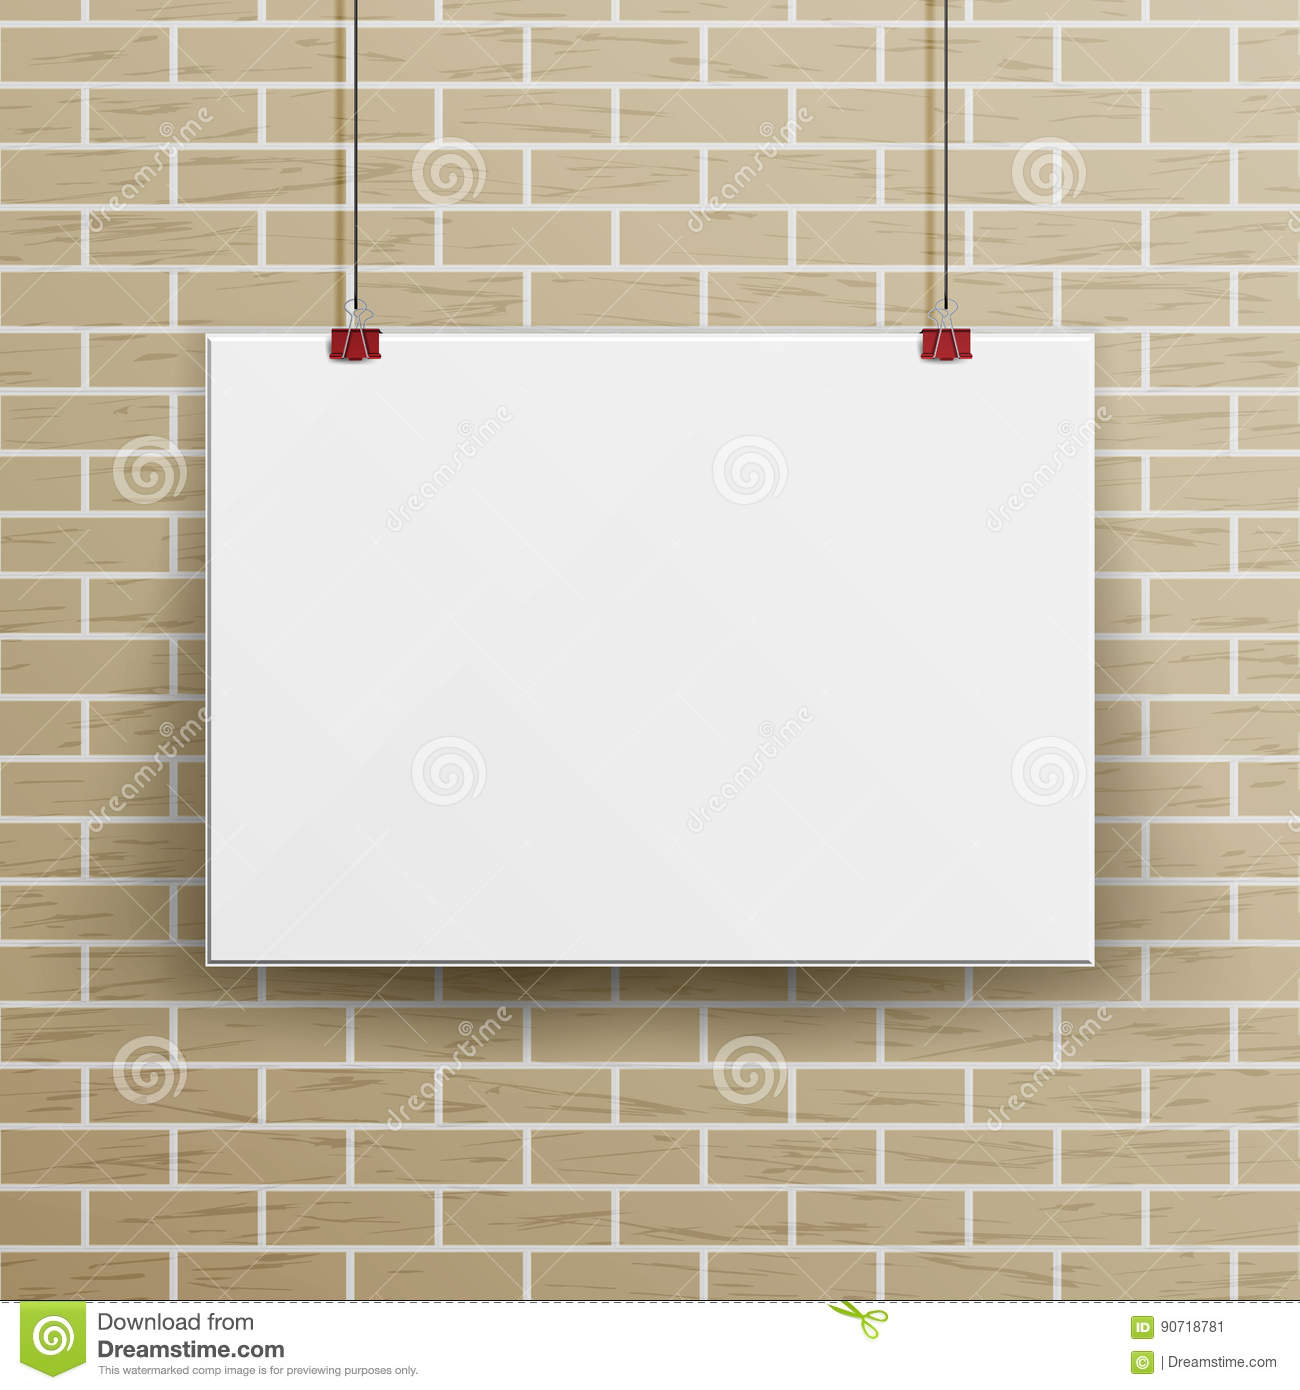 White blank paper wall poster mock up template vector. Realistic.